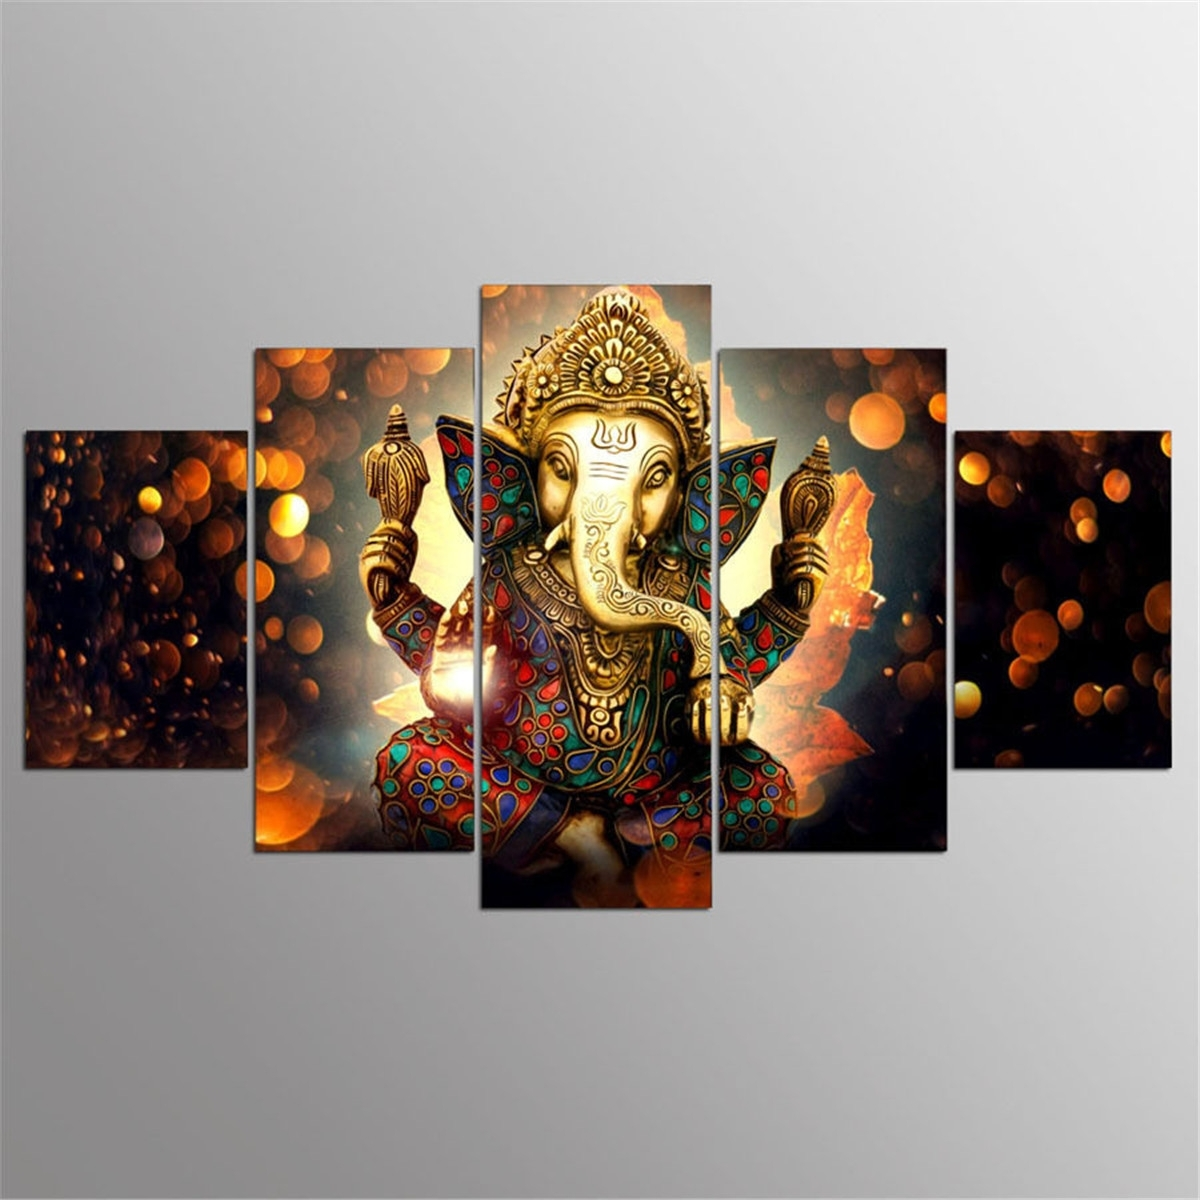 5Pcs Ganesha India Canvas Painting Print Modern Wall Art Poster within Most Current India Canvas Wall Art